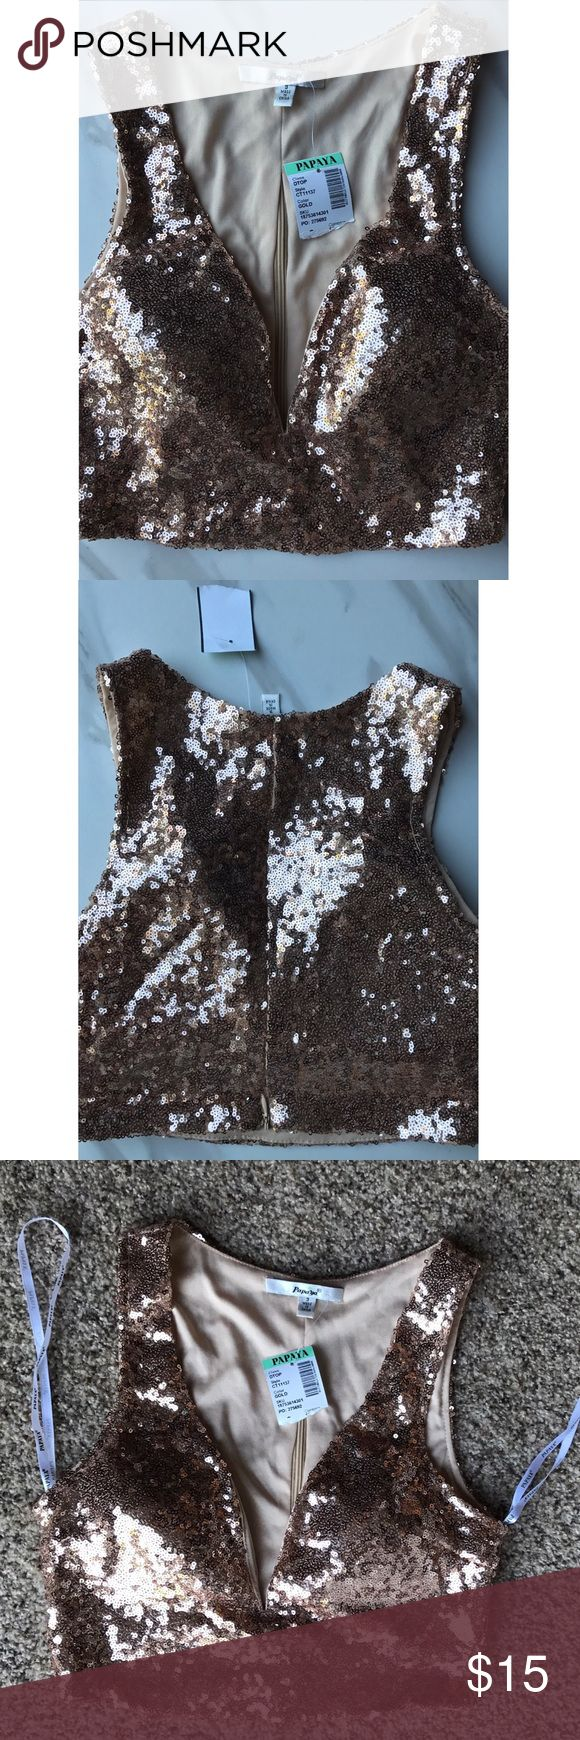 NWT - Small Gold sparkle crop top New-never worn gold spark crop top size small Papaya Tops Crop Tops